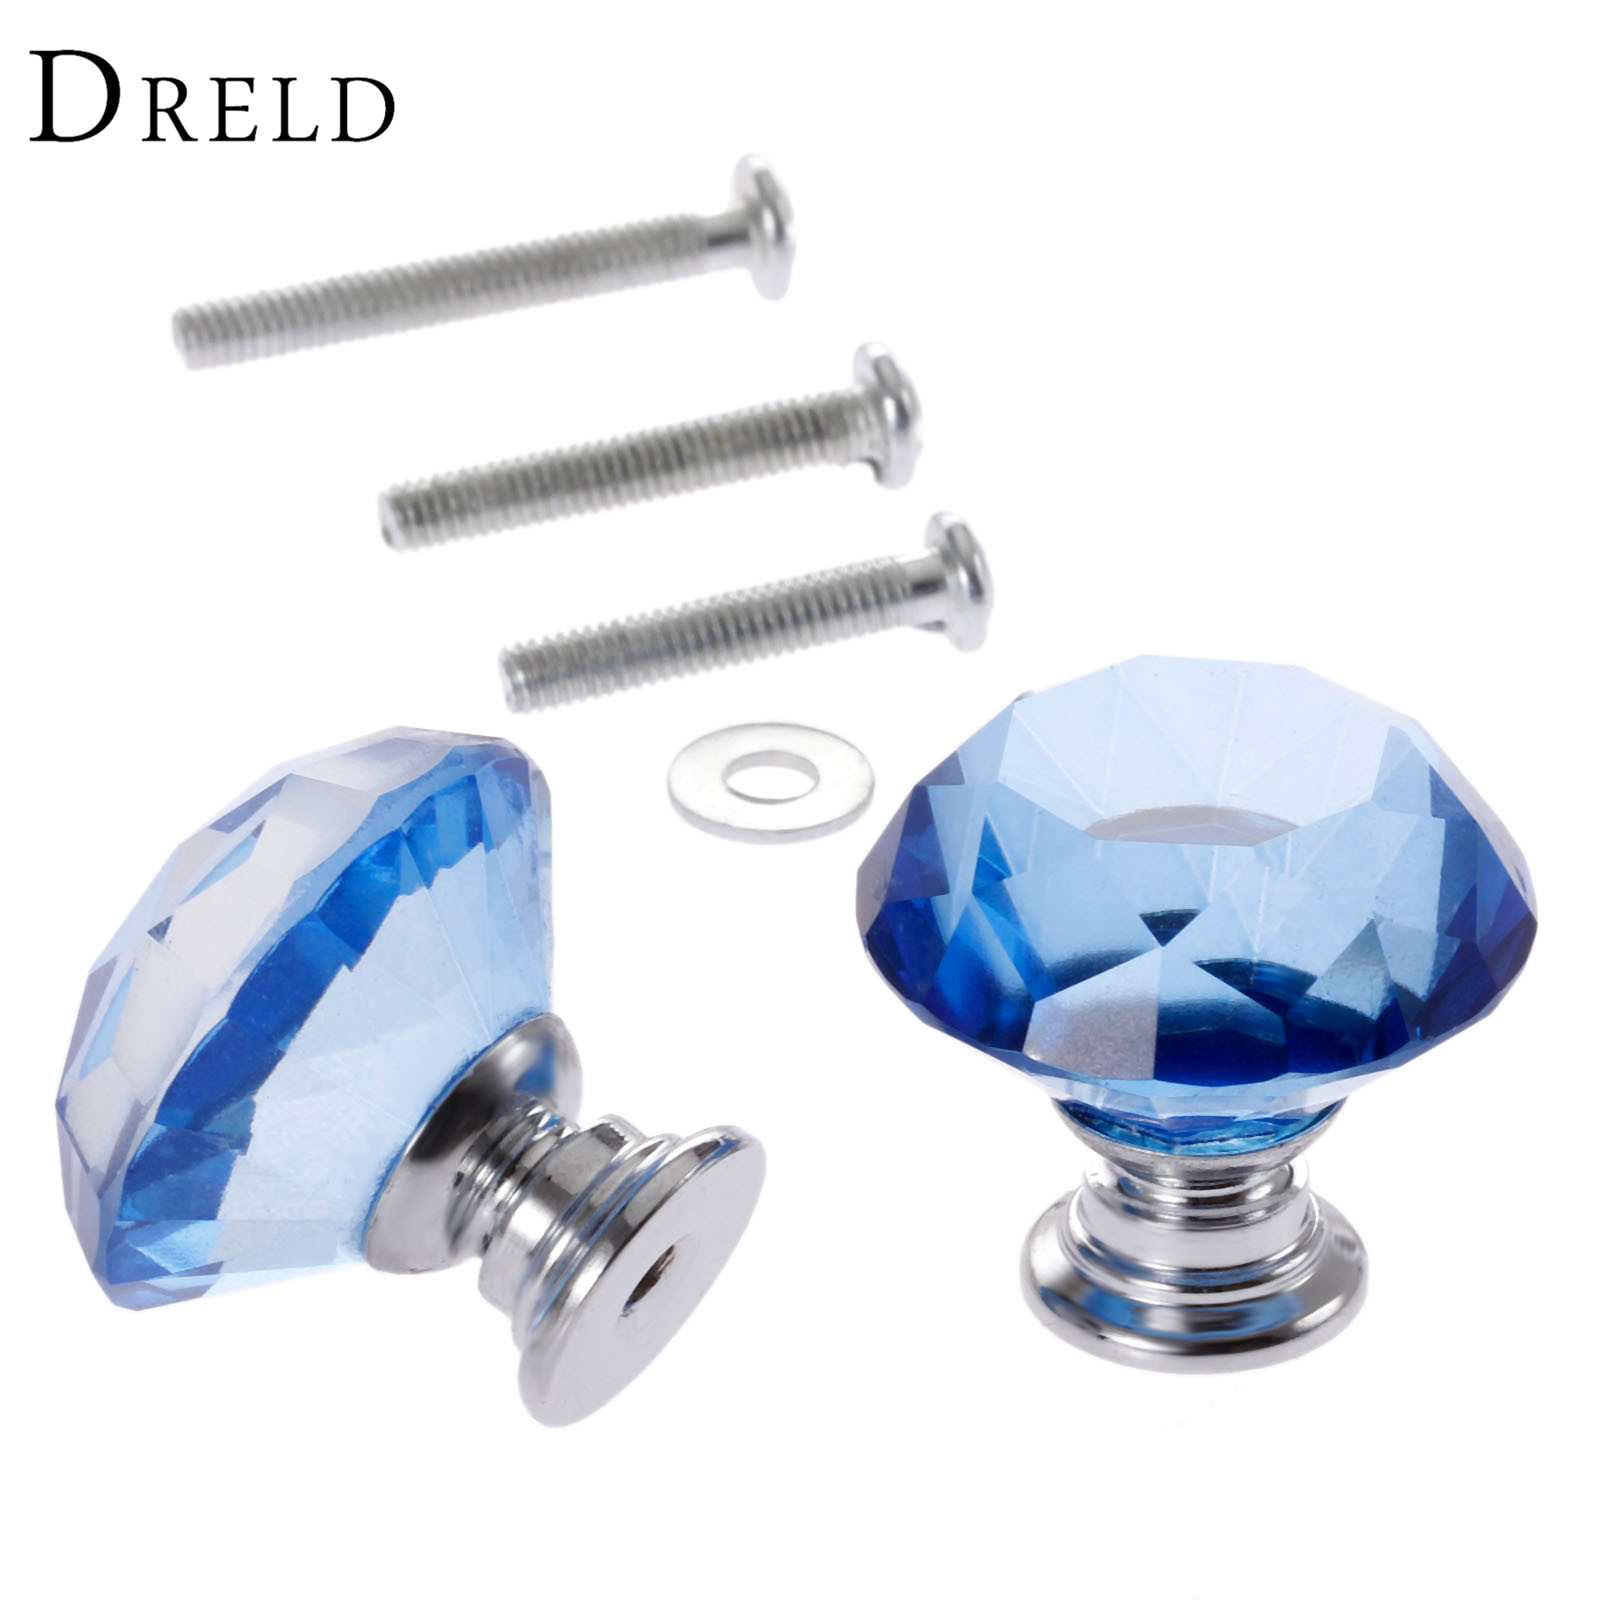 DRELD 2Pcs 30mm Diamond Crystal Drawer Pulls Glass Door Cabinet Wardrobe Pull Knobs Blue Furniture Handles + 6Pcs Screws lhll 12x clear crystal glass door knobs drawer cabinet furniture pull handles